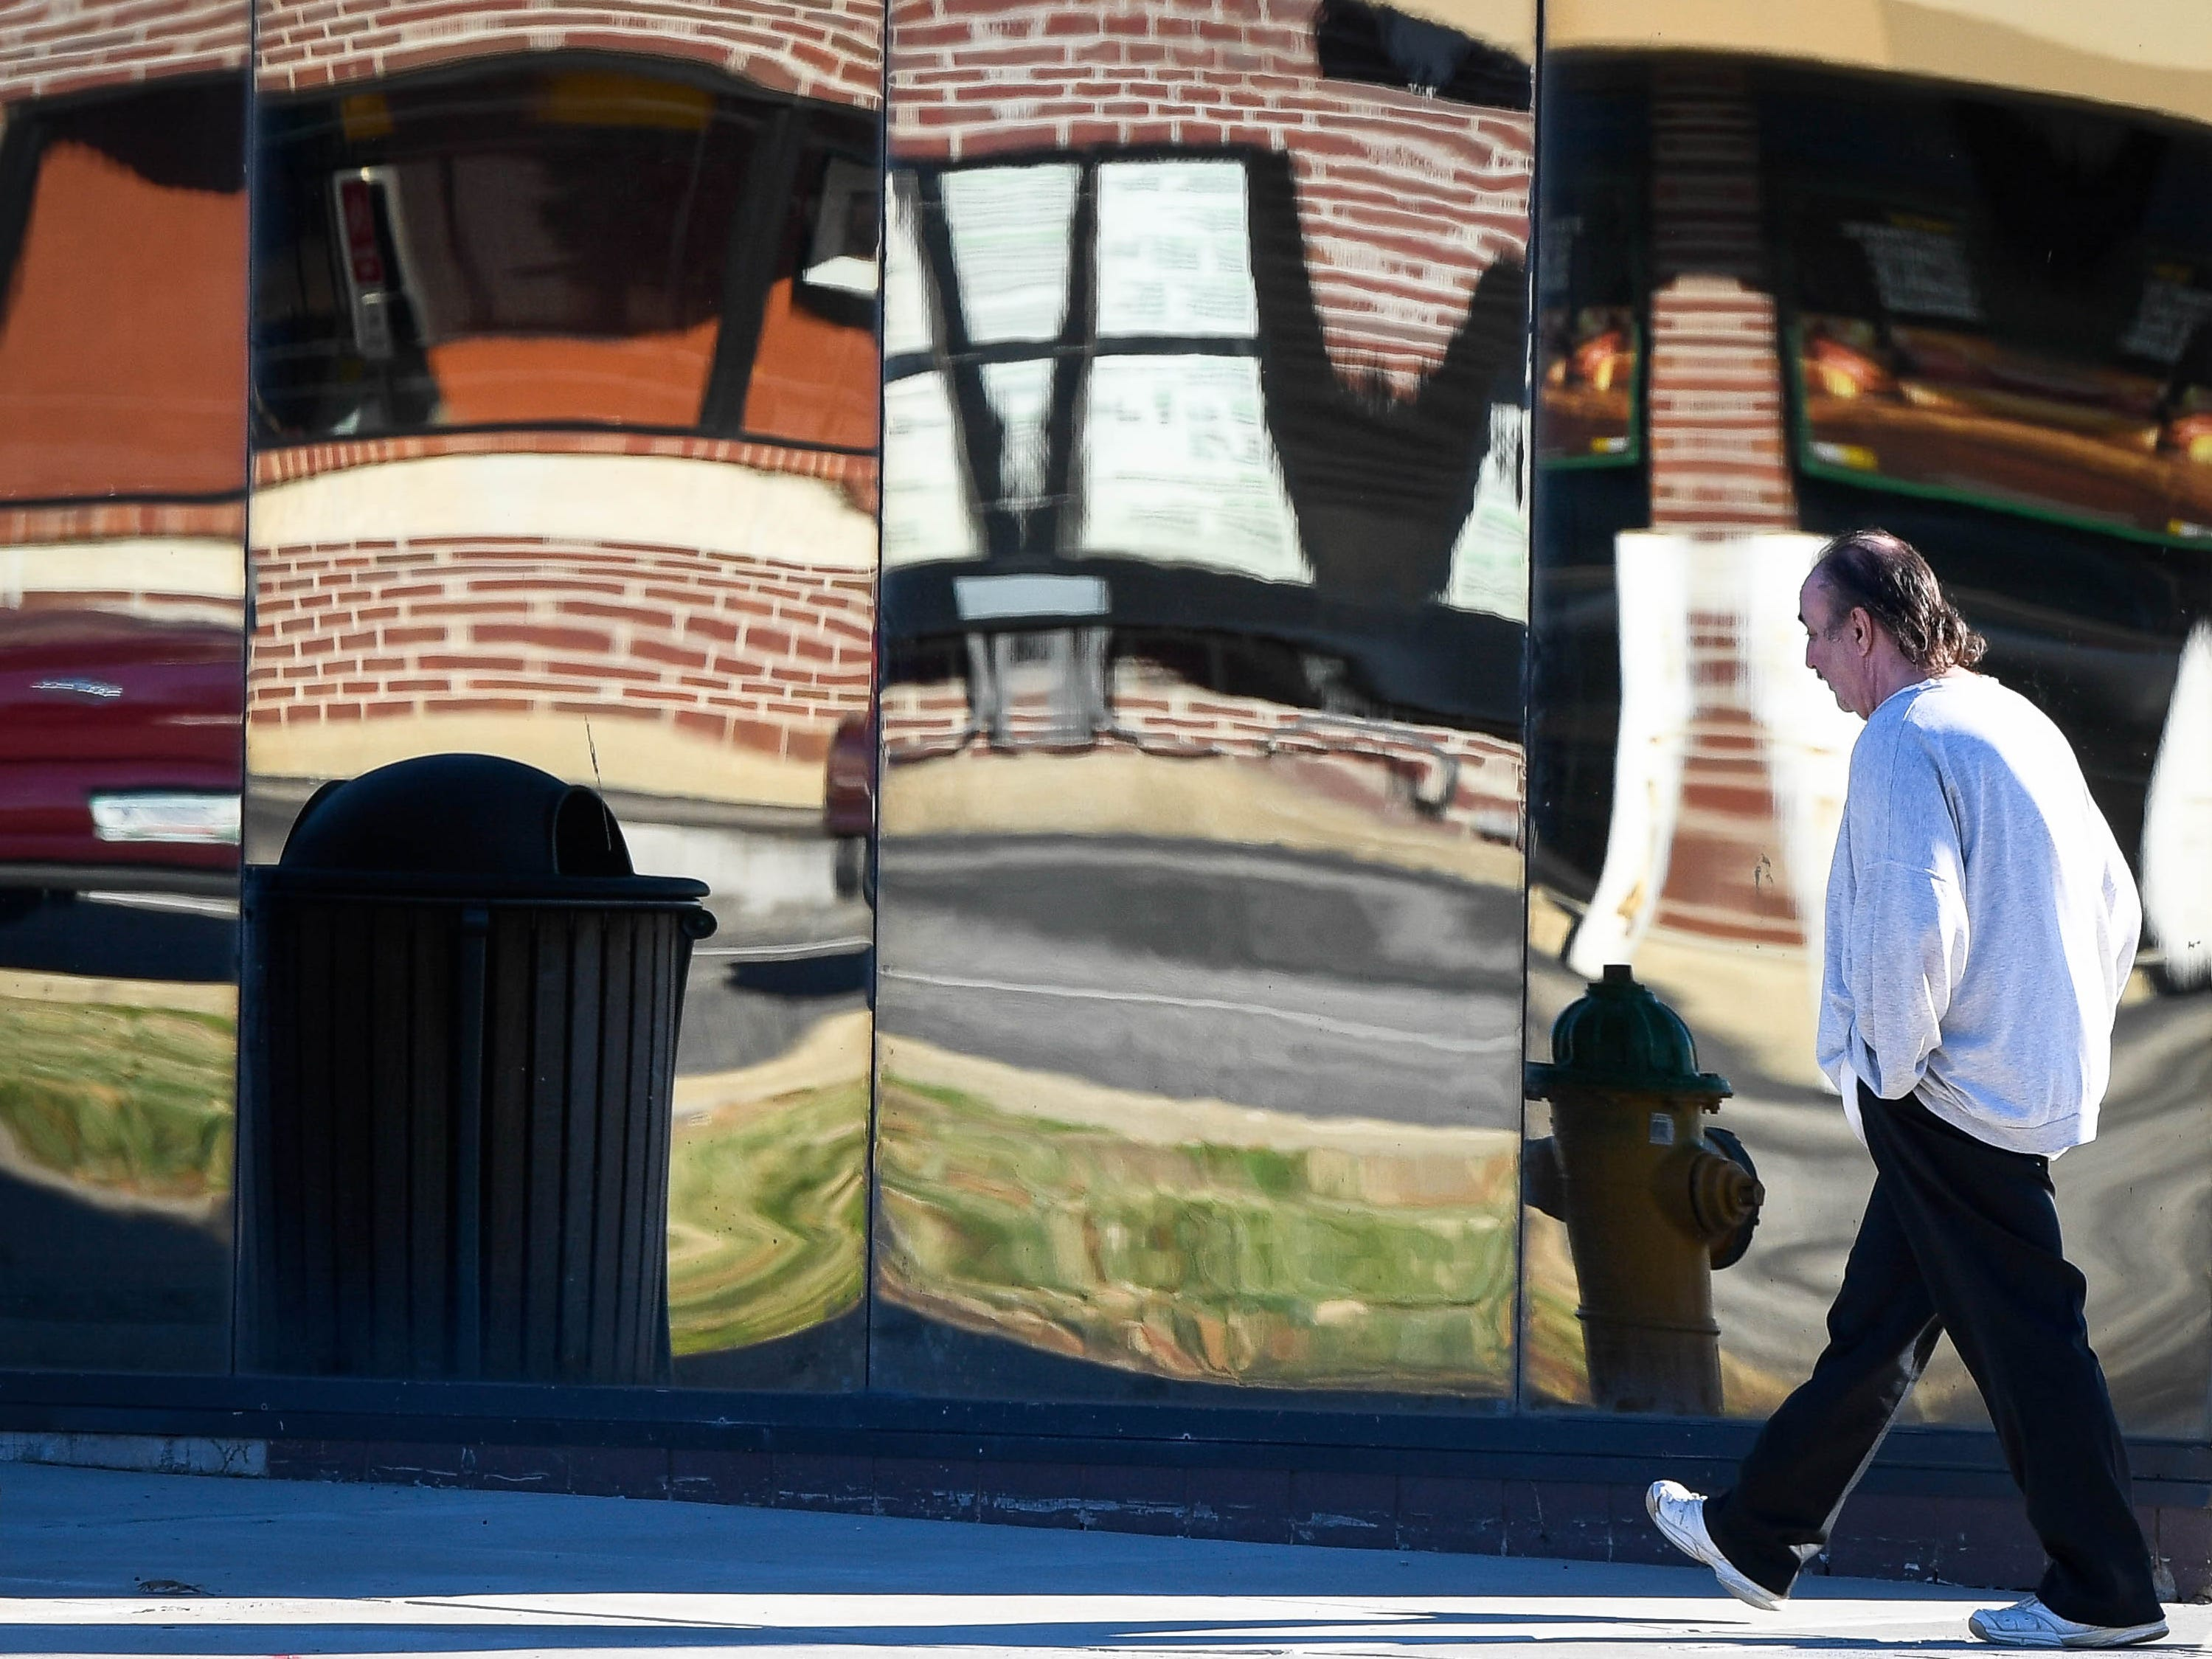 Sun and warming temperatures coaxe people outside like Daniel Creech, Evansville, walking by a mirrored building front on Virginia Street Monday afternoon, December 17, 2018.